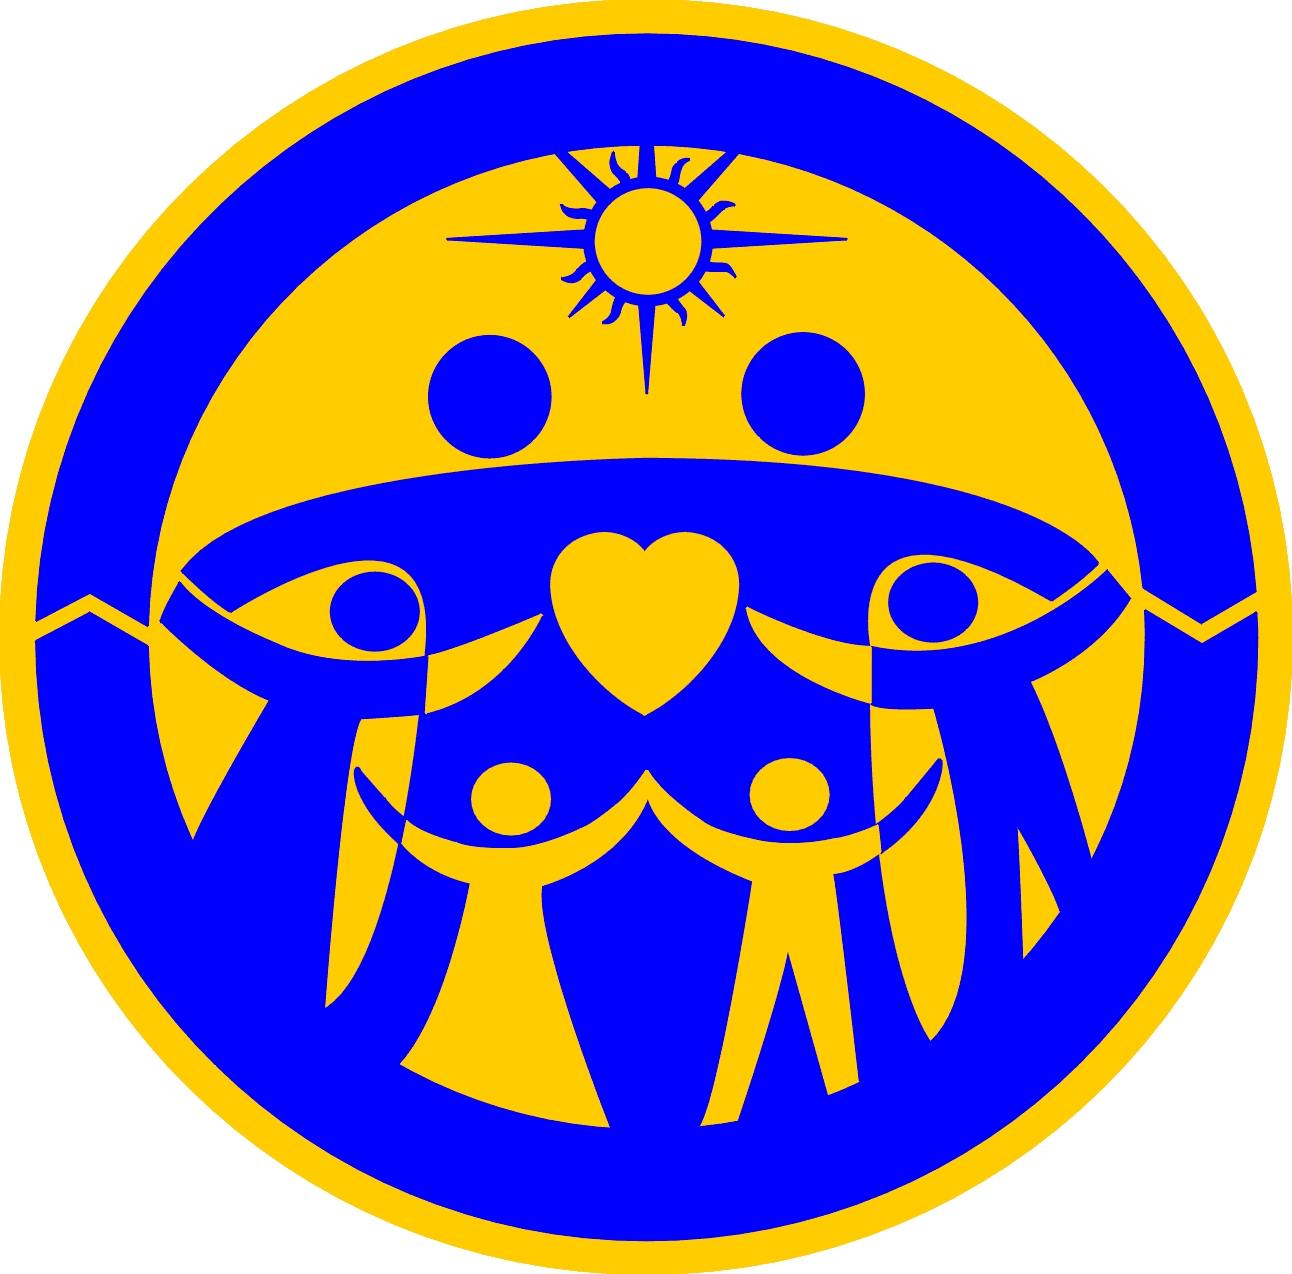 Unification logos toc ffwpu family federation for world peace and unification in jpg format buycottarizona Gallery